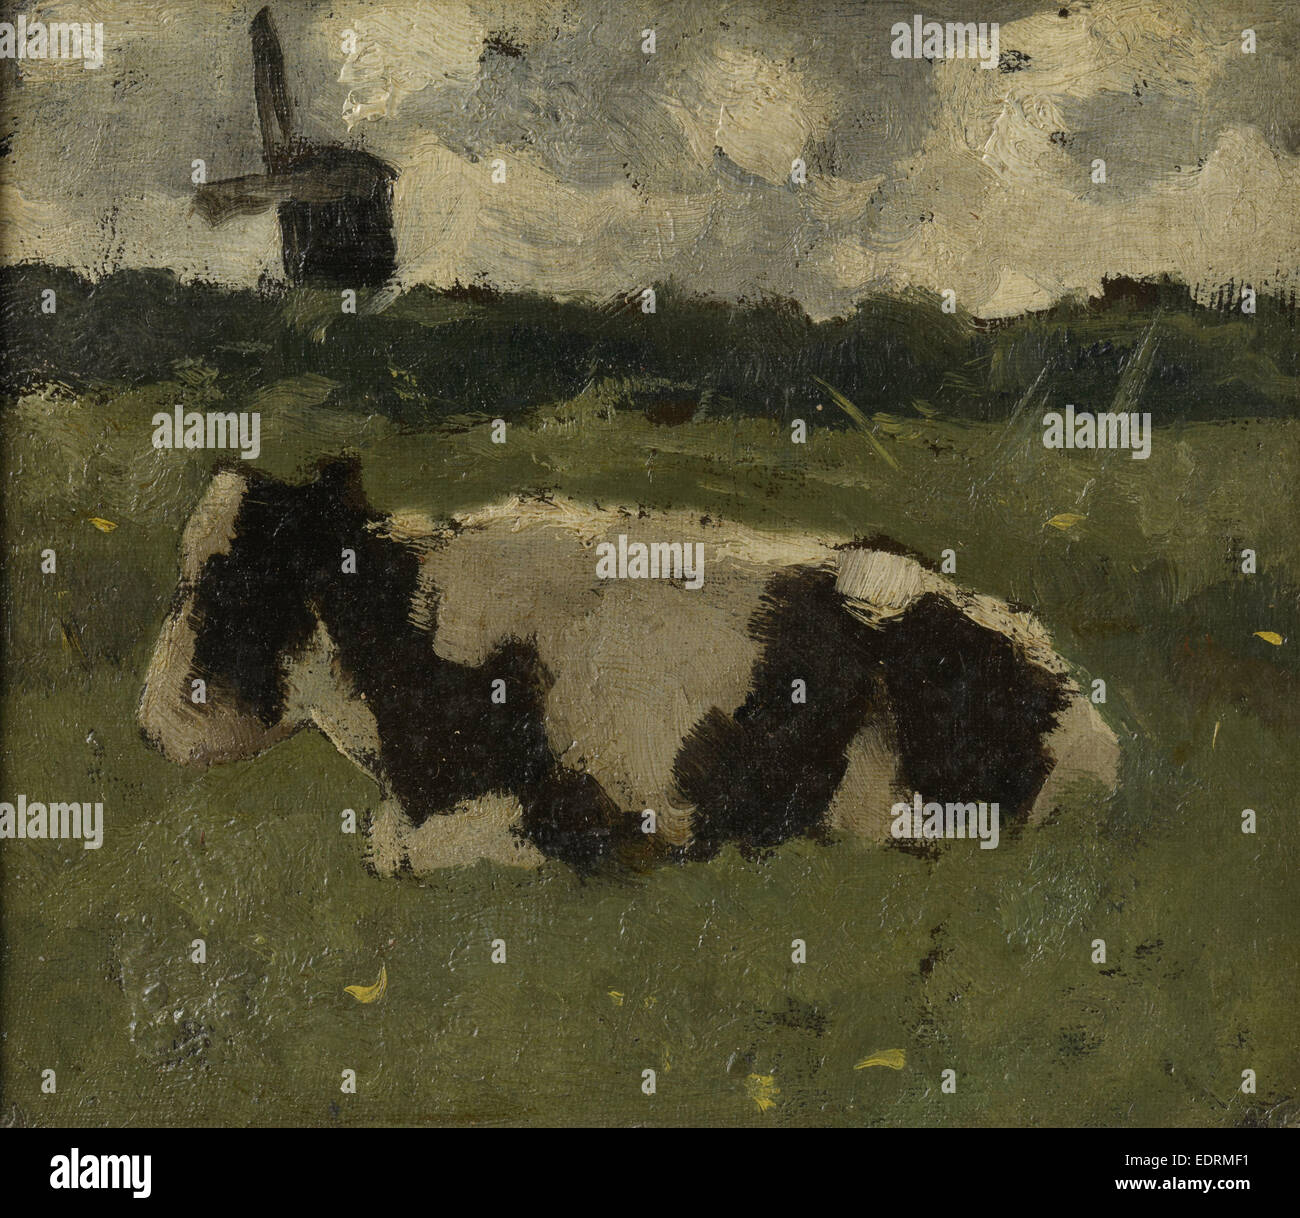 Lying cow with mill, Richard Roland Holst, 1888 - Stock Image